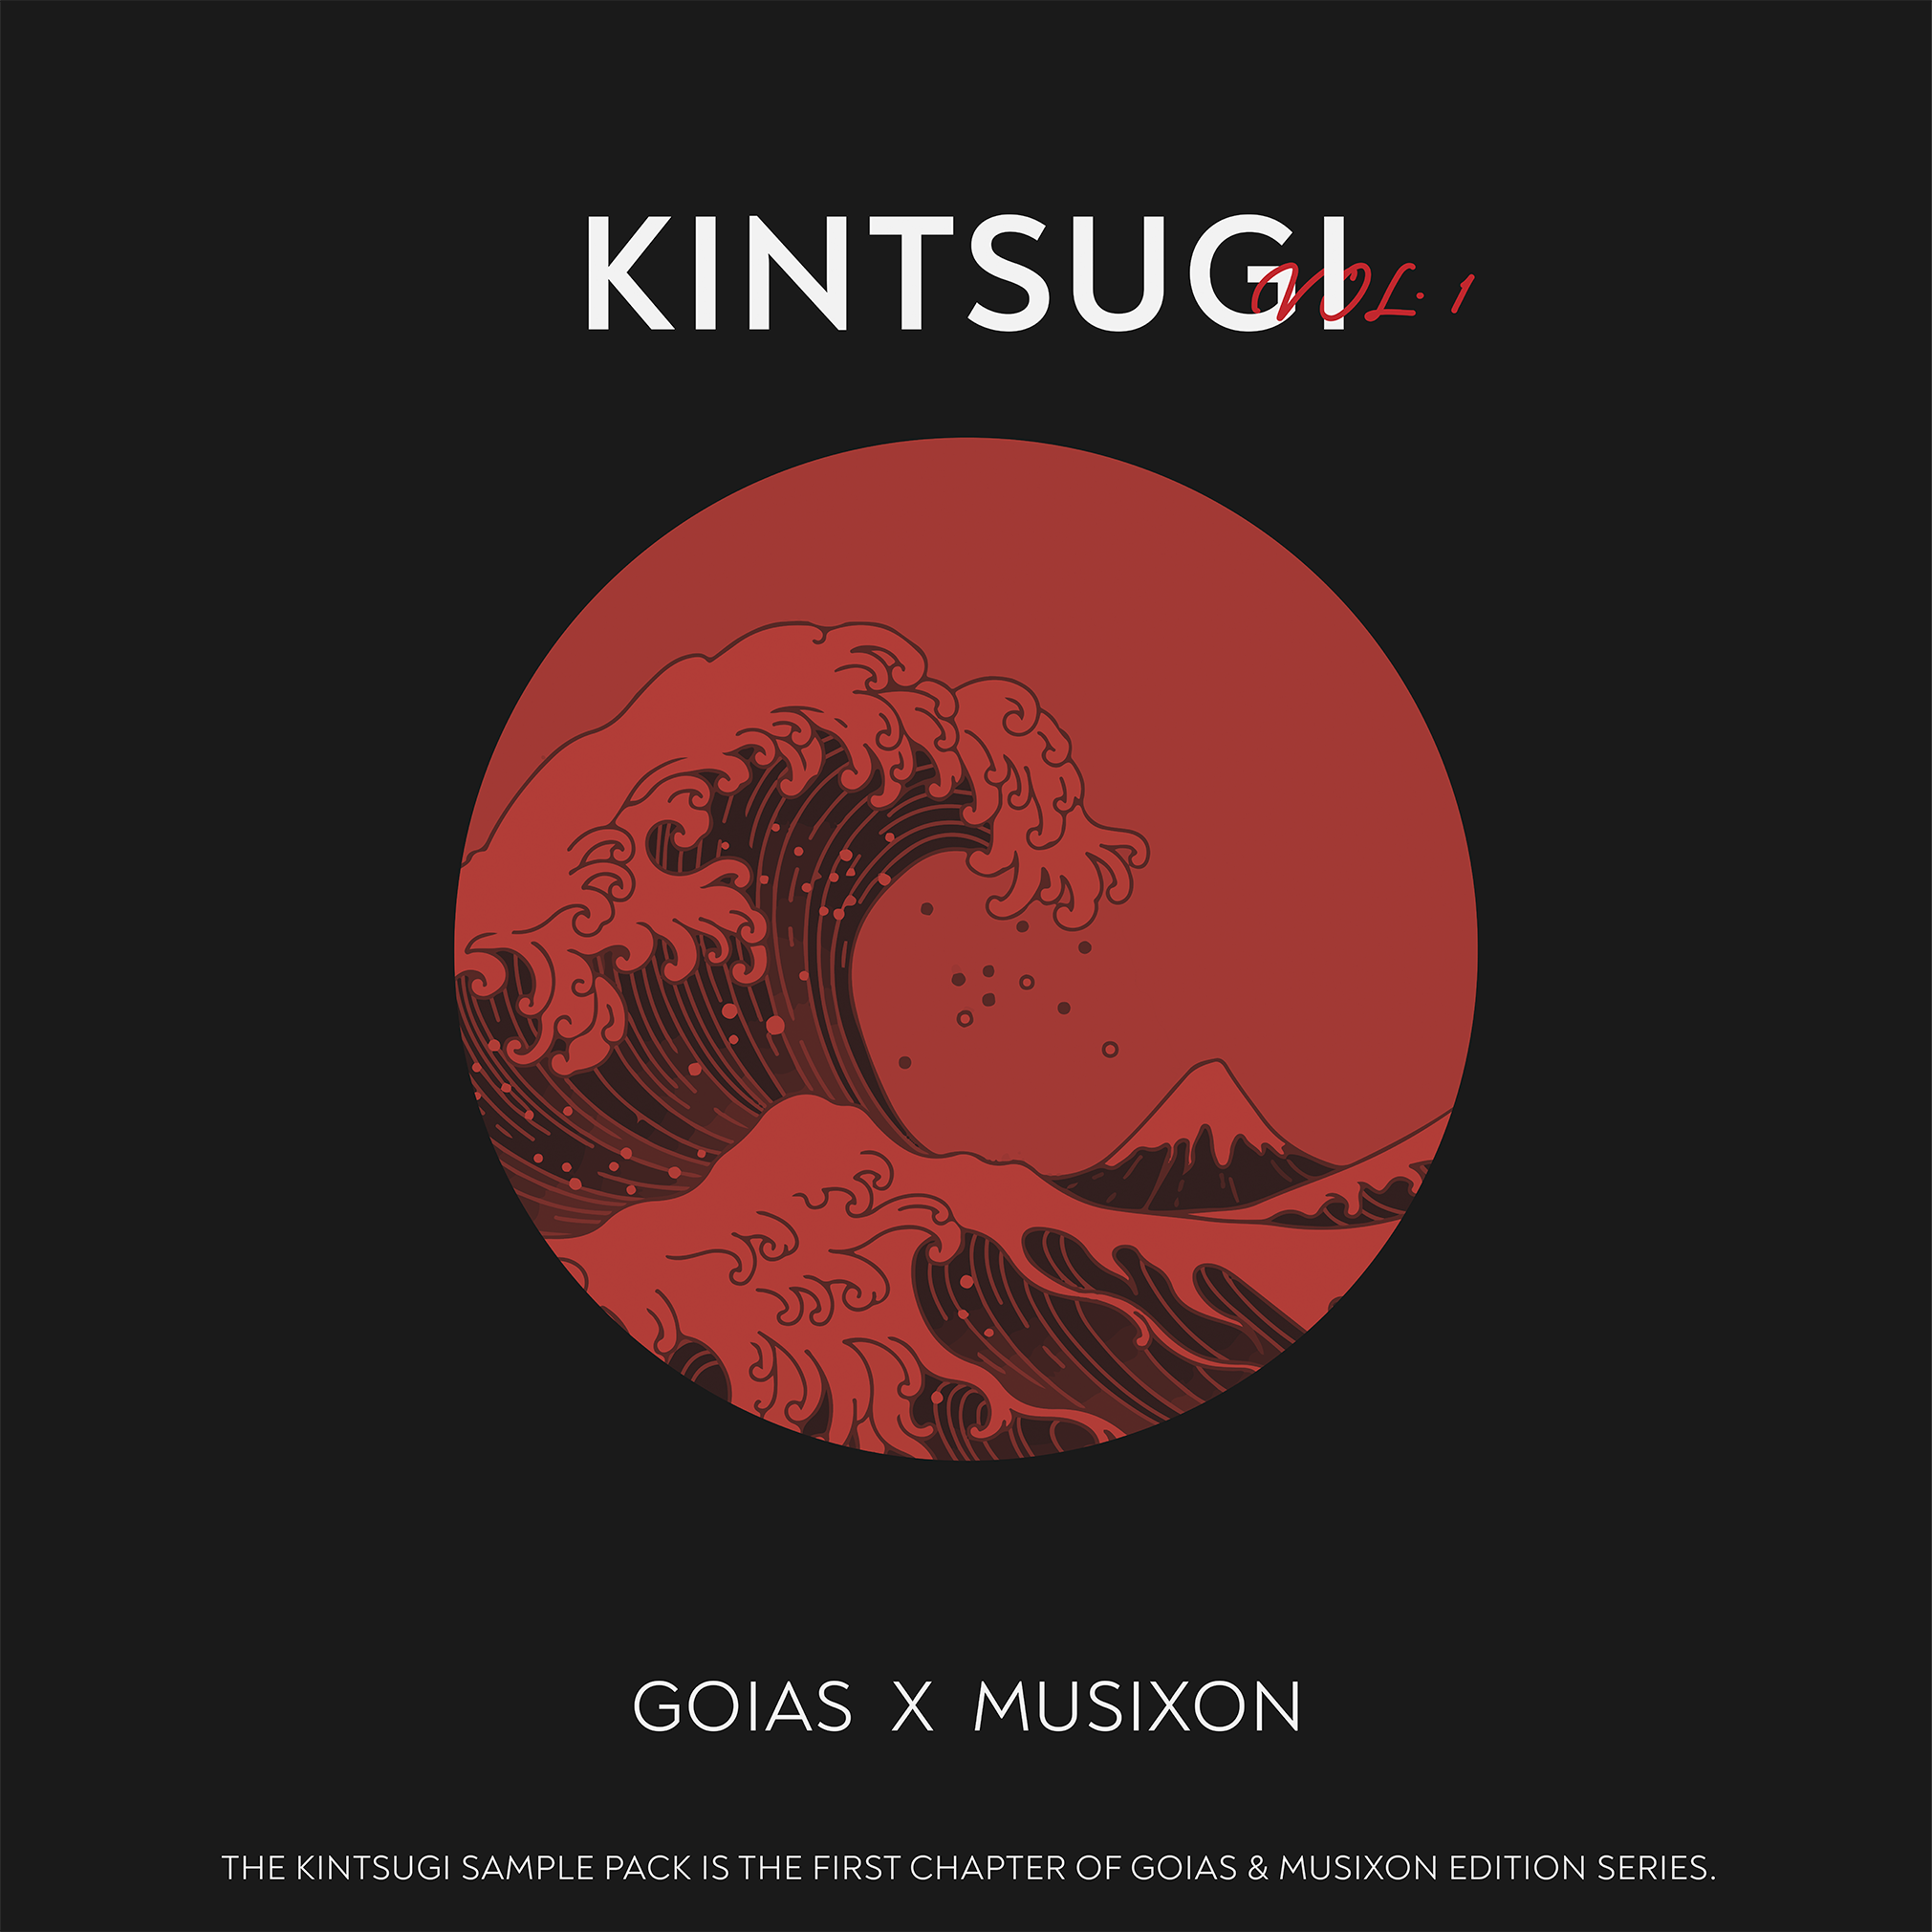 KINTSUGI SAMPLE PACK VOL. 1 PREMIUM EDITION